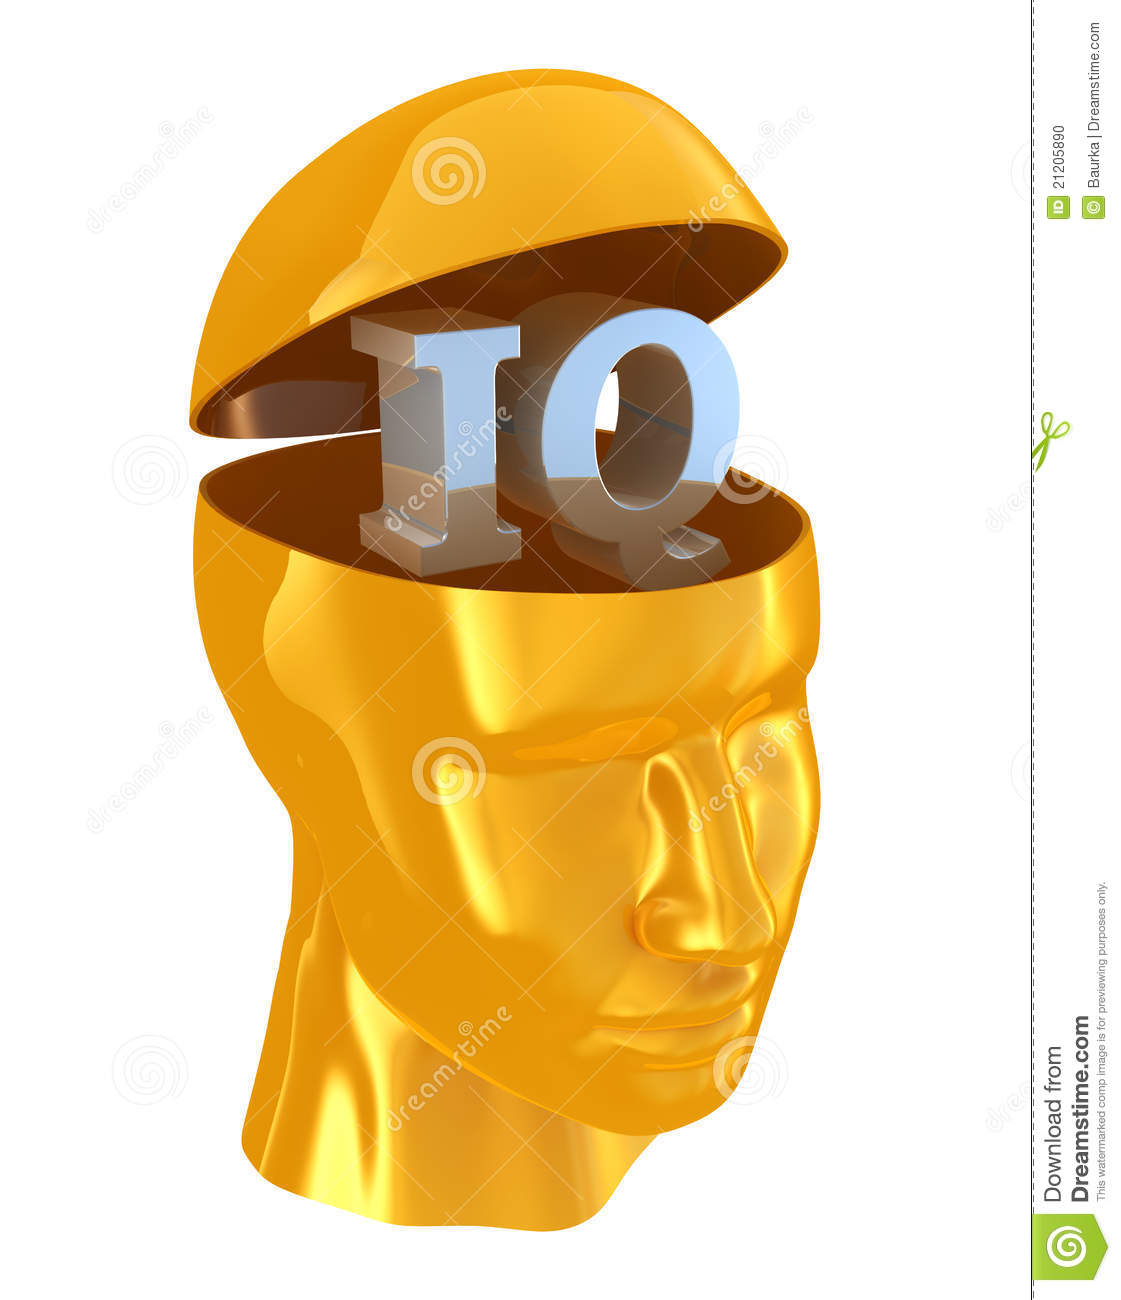 intelligence quotient What's the difference between eq and iq emotional intelligence, or emotional quotient (eq), is defined as an individual's ability to identify.